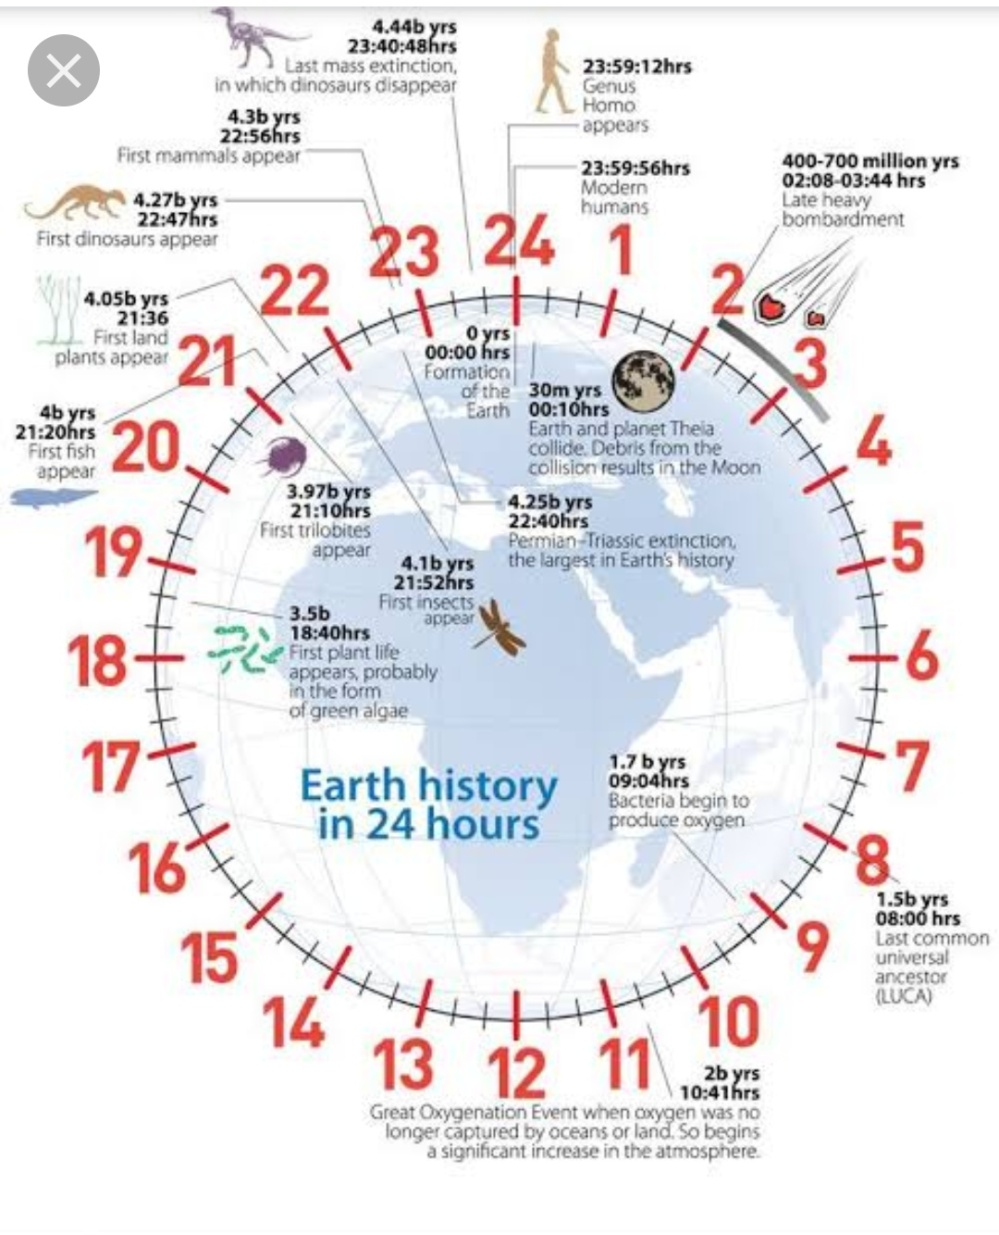 The history of our planet in 24 hours